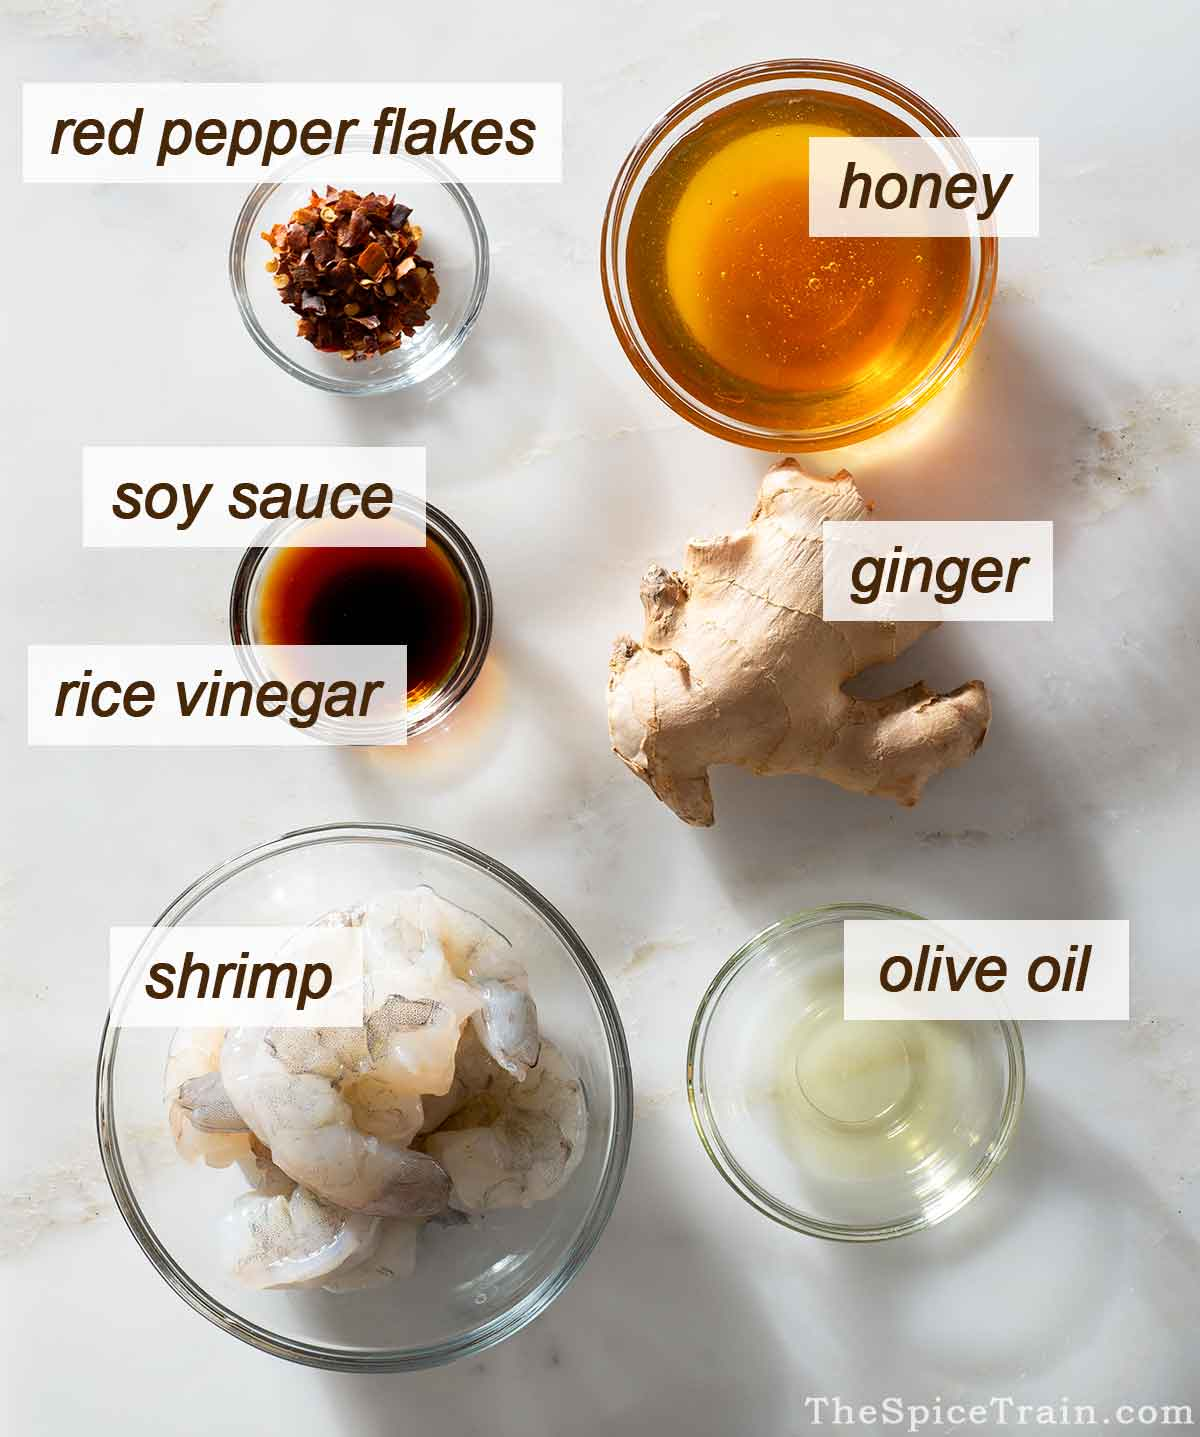 Sweet and spicy shrimp ingredients on a kitchen counter.